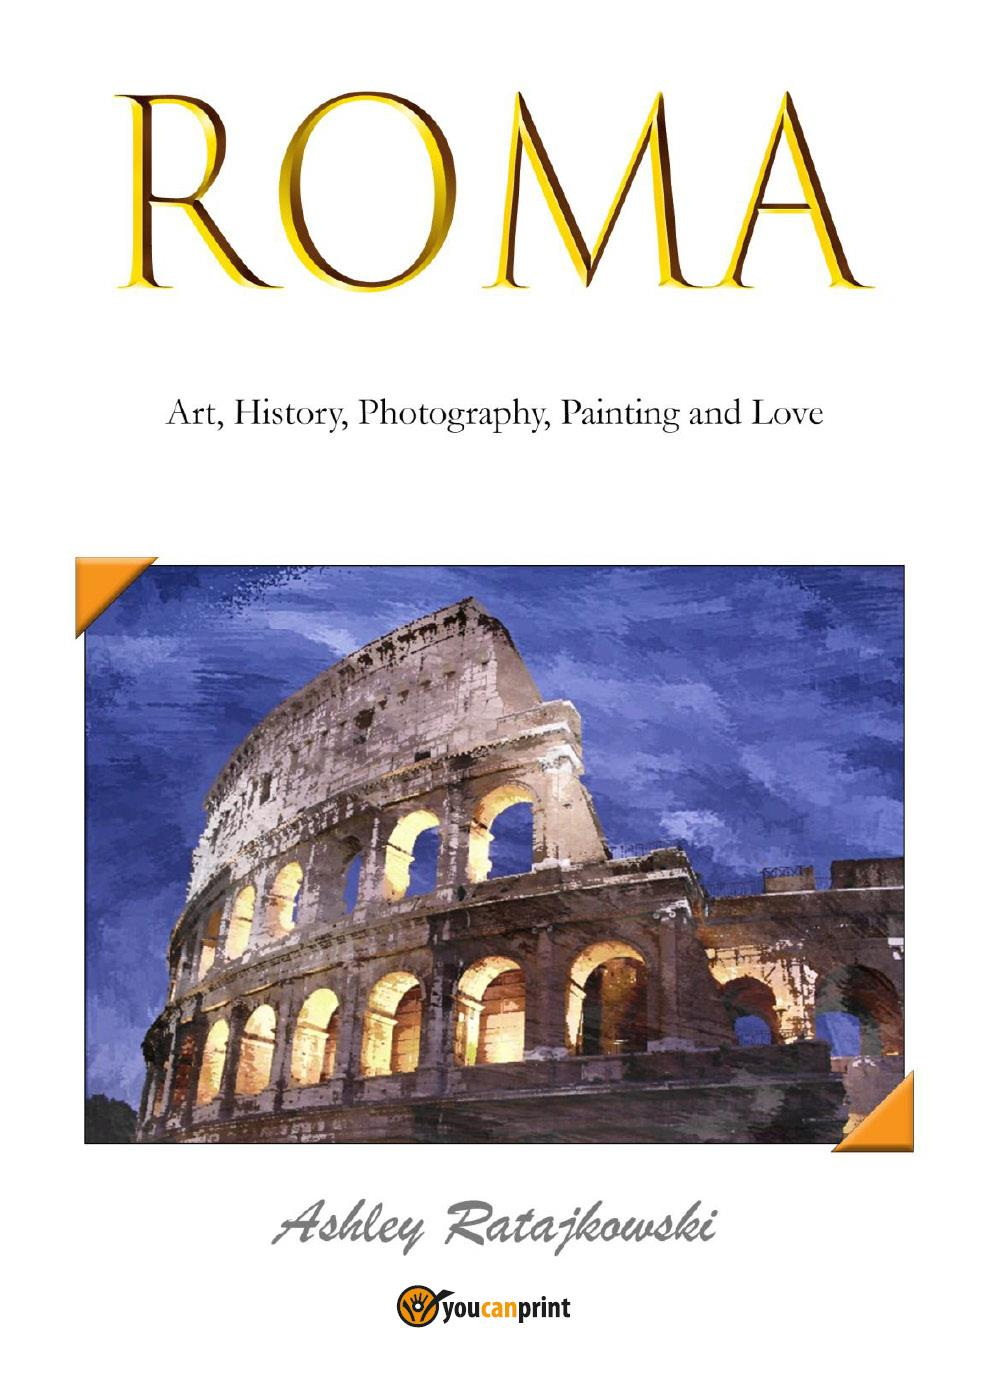 Roma - Art, History, Photography, Painting and Love